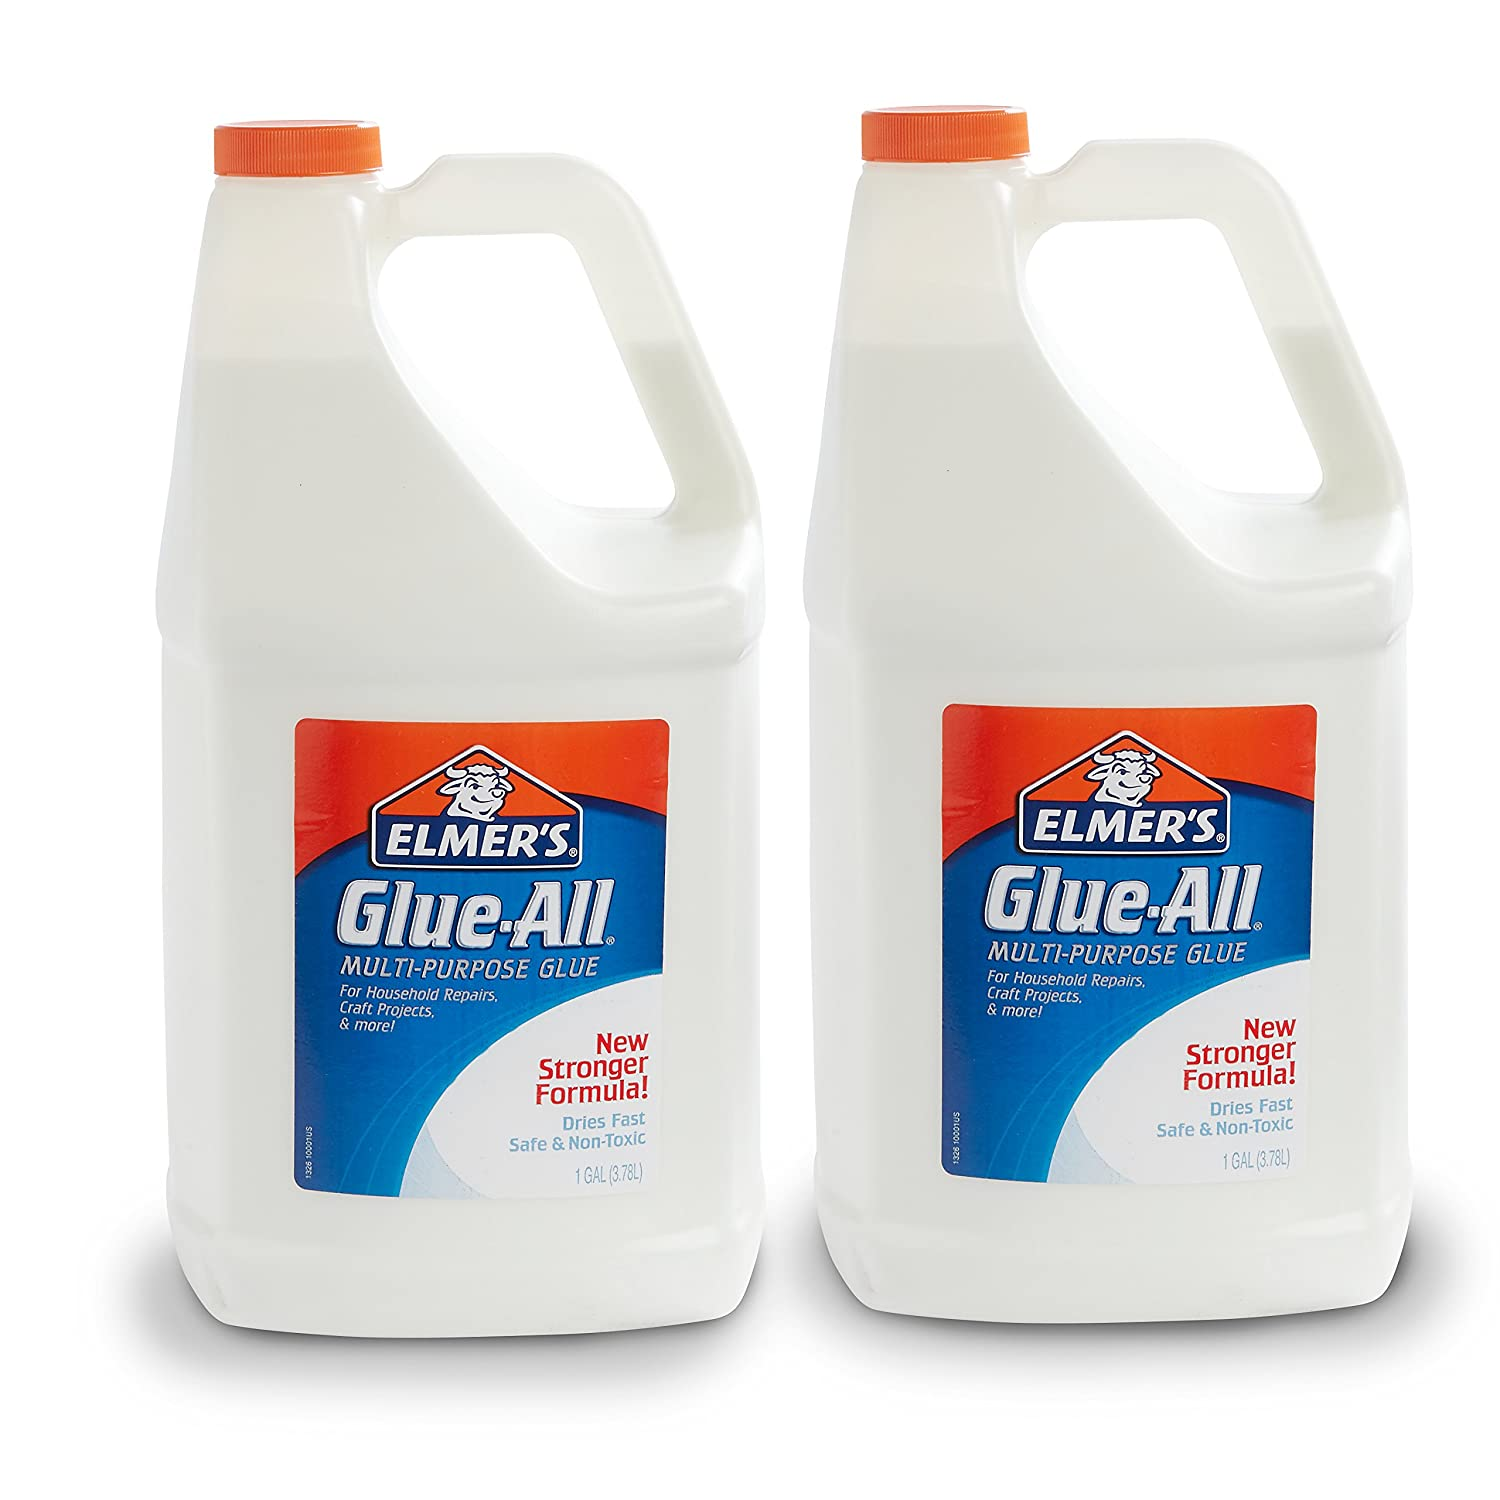 Elmer's Glue-All Multi-Purpose Liquid Glue, Extra Strong, 1 Gallon, 2 Count - Great for Making Slime Elmer' s Products E1326NR